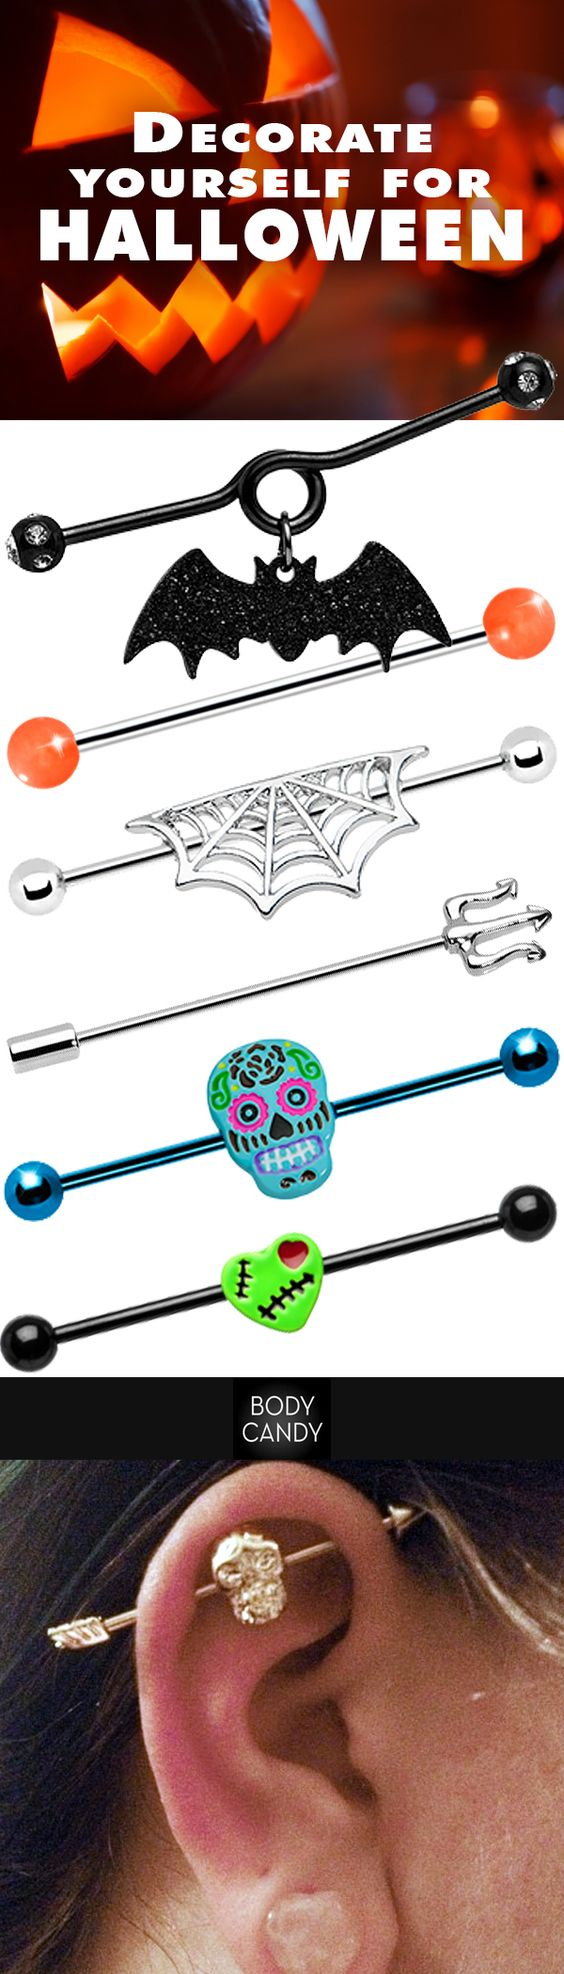 Haunting in the light of the moon, Halloween inspired industrial barbells. www.BodyCandy.com